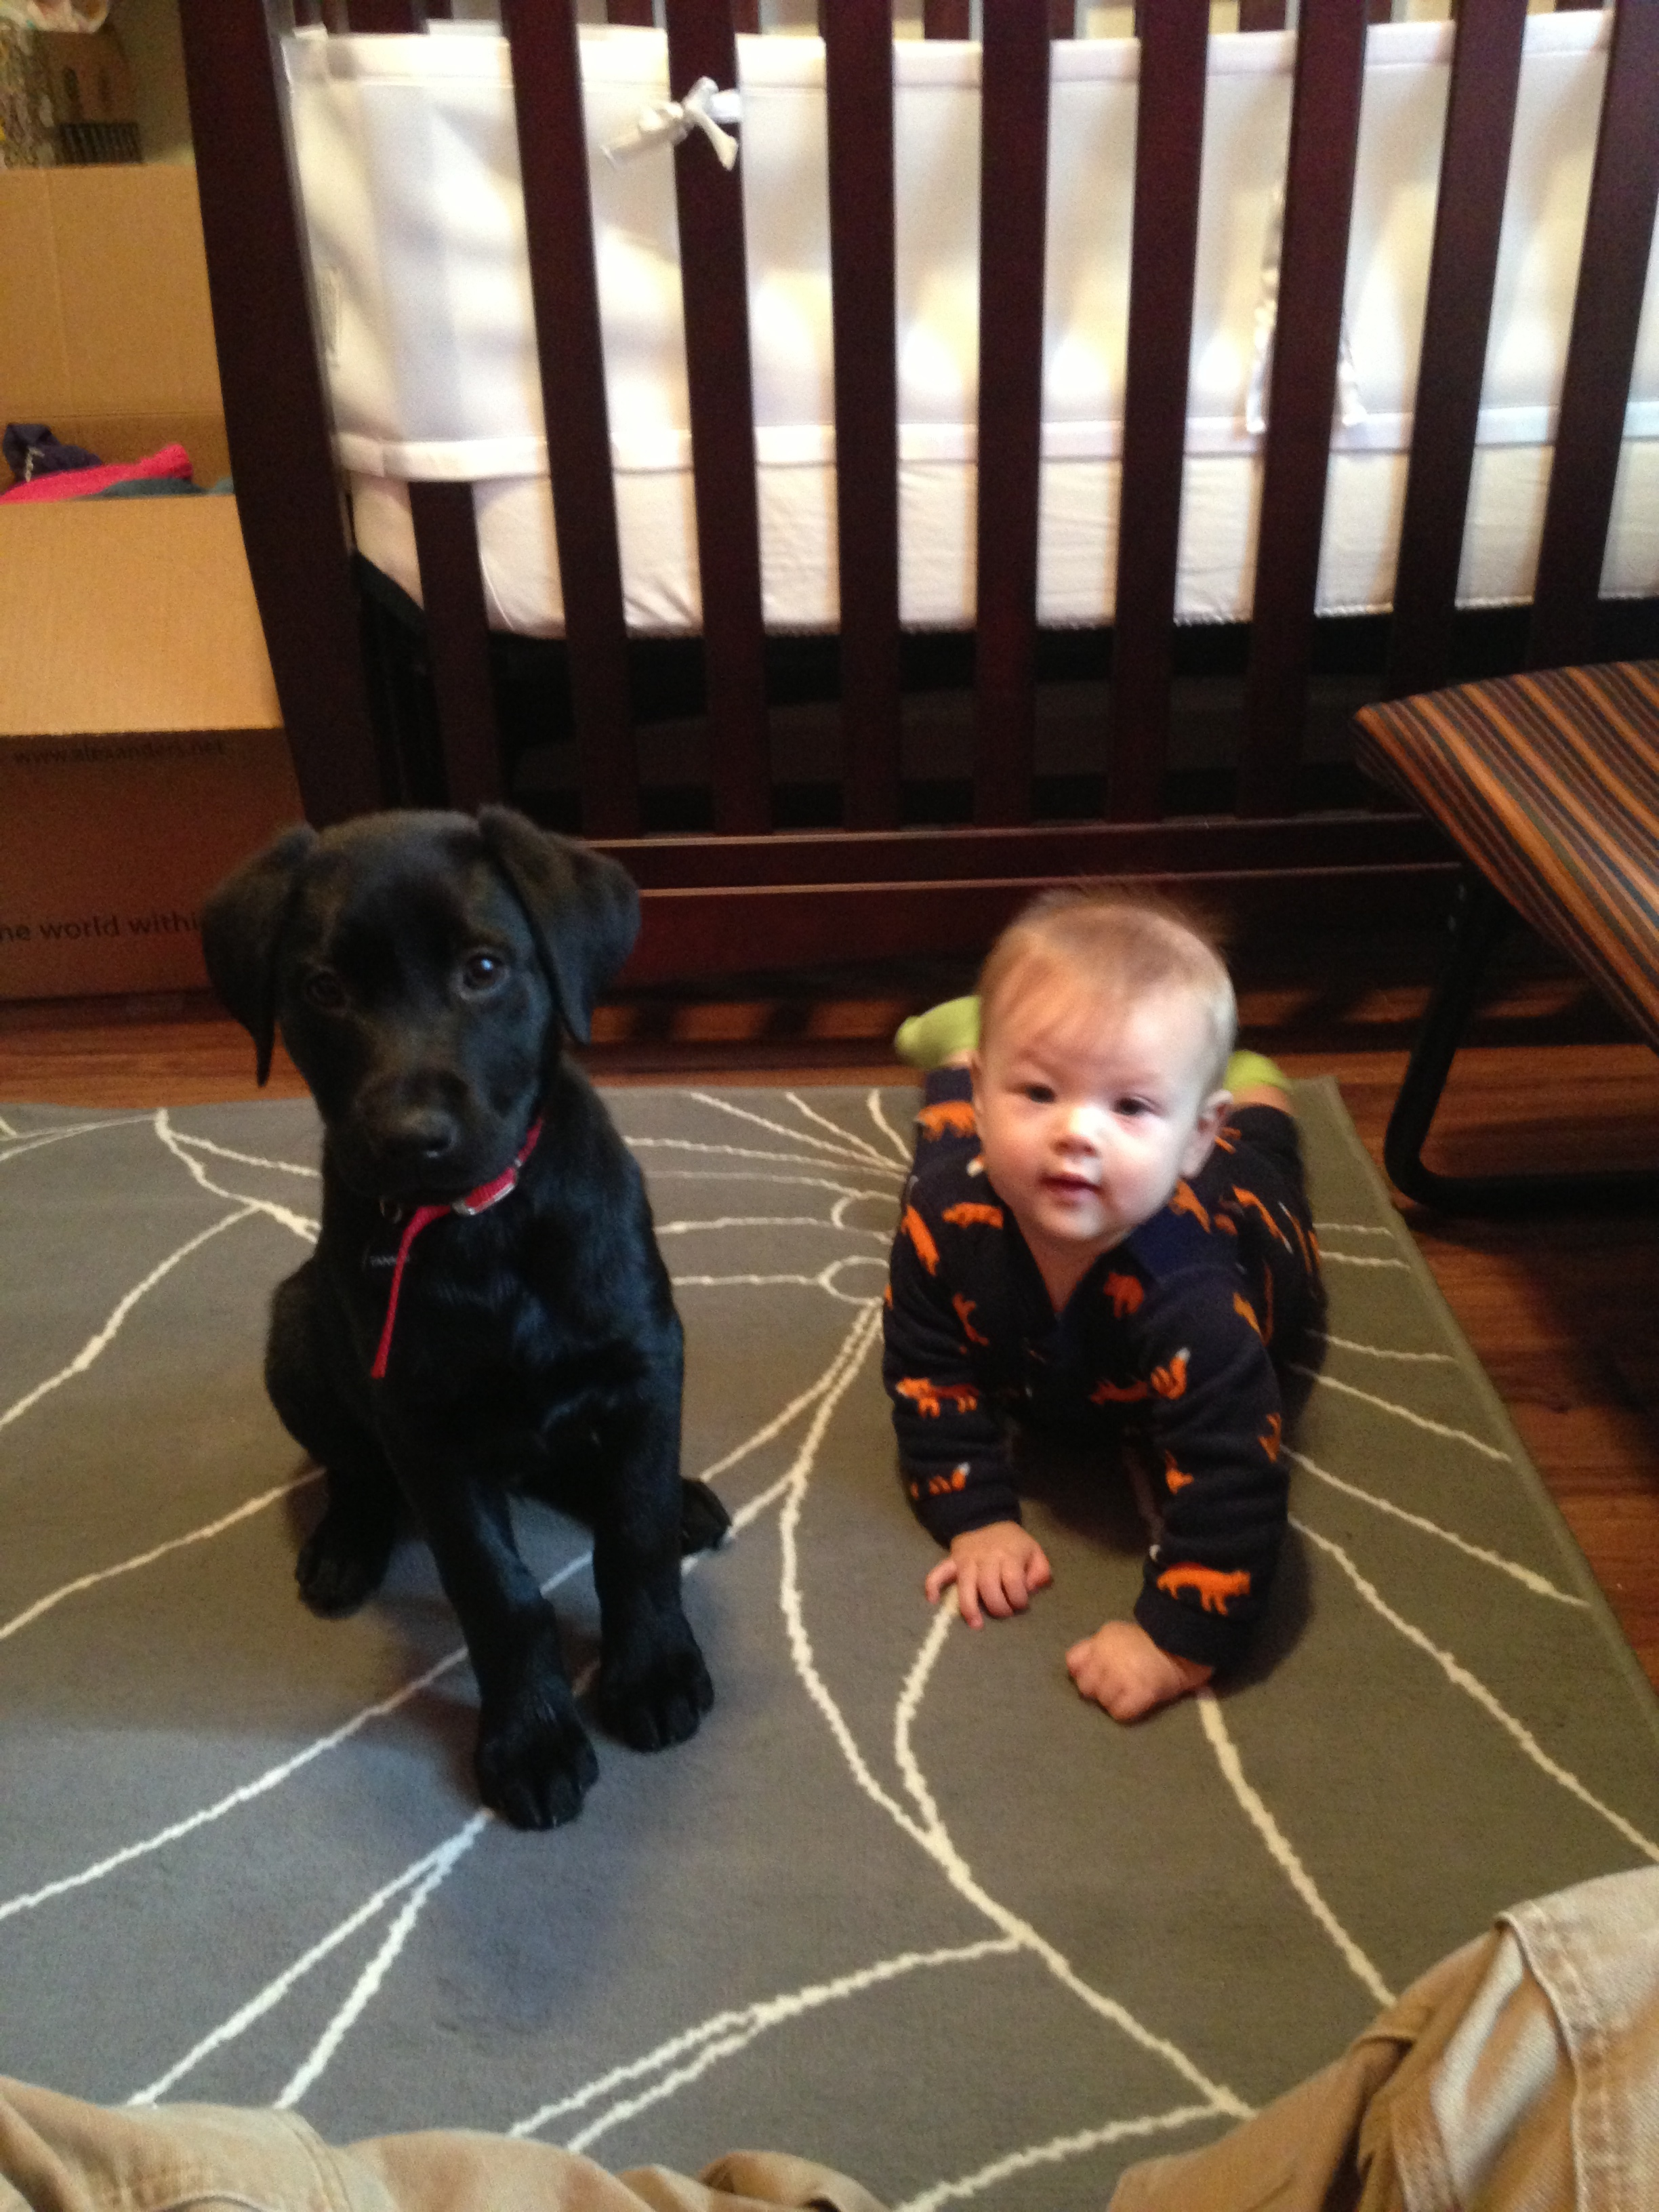 Tanker and my Daughter Reli, her at a little over a year and him at probably 18 weeks.